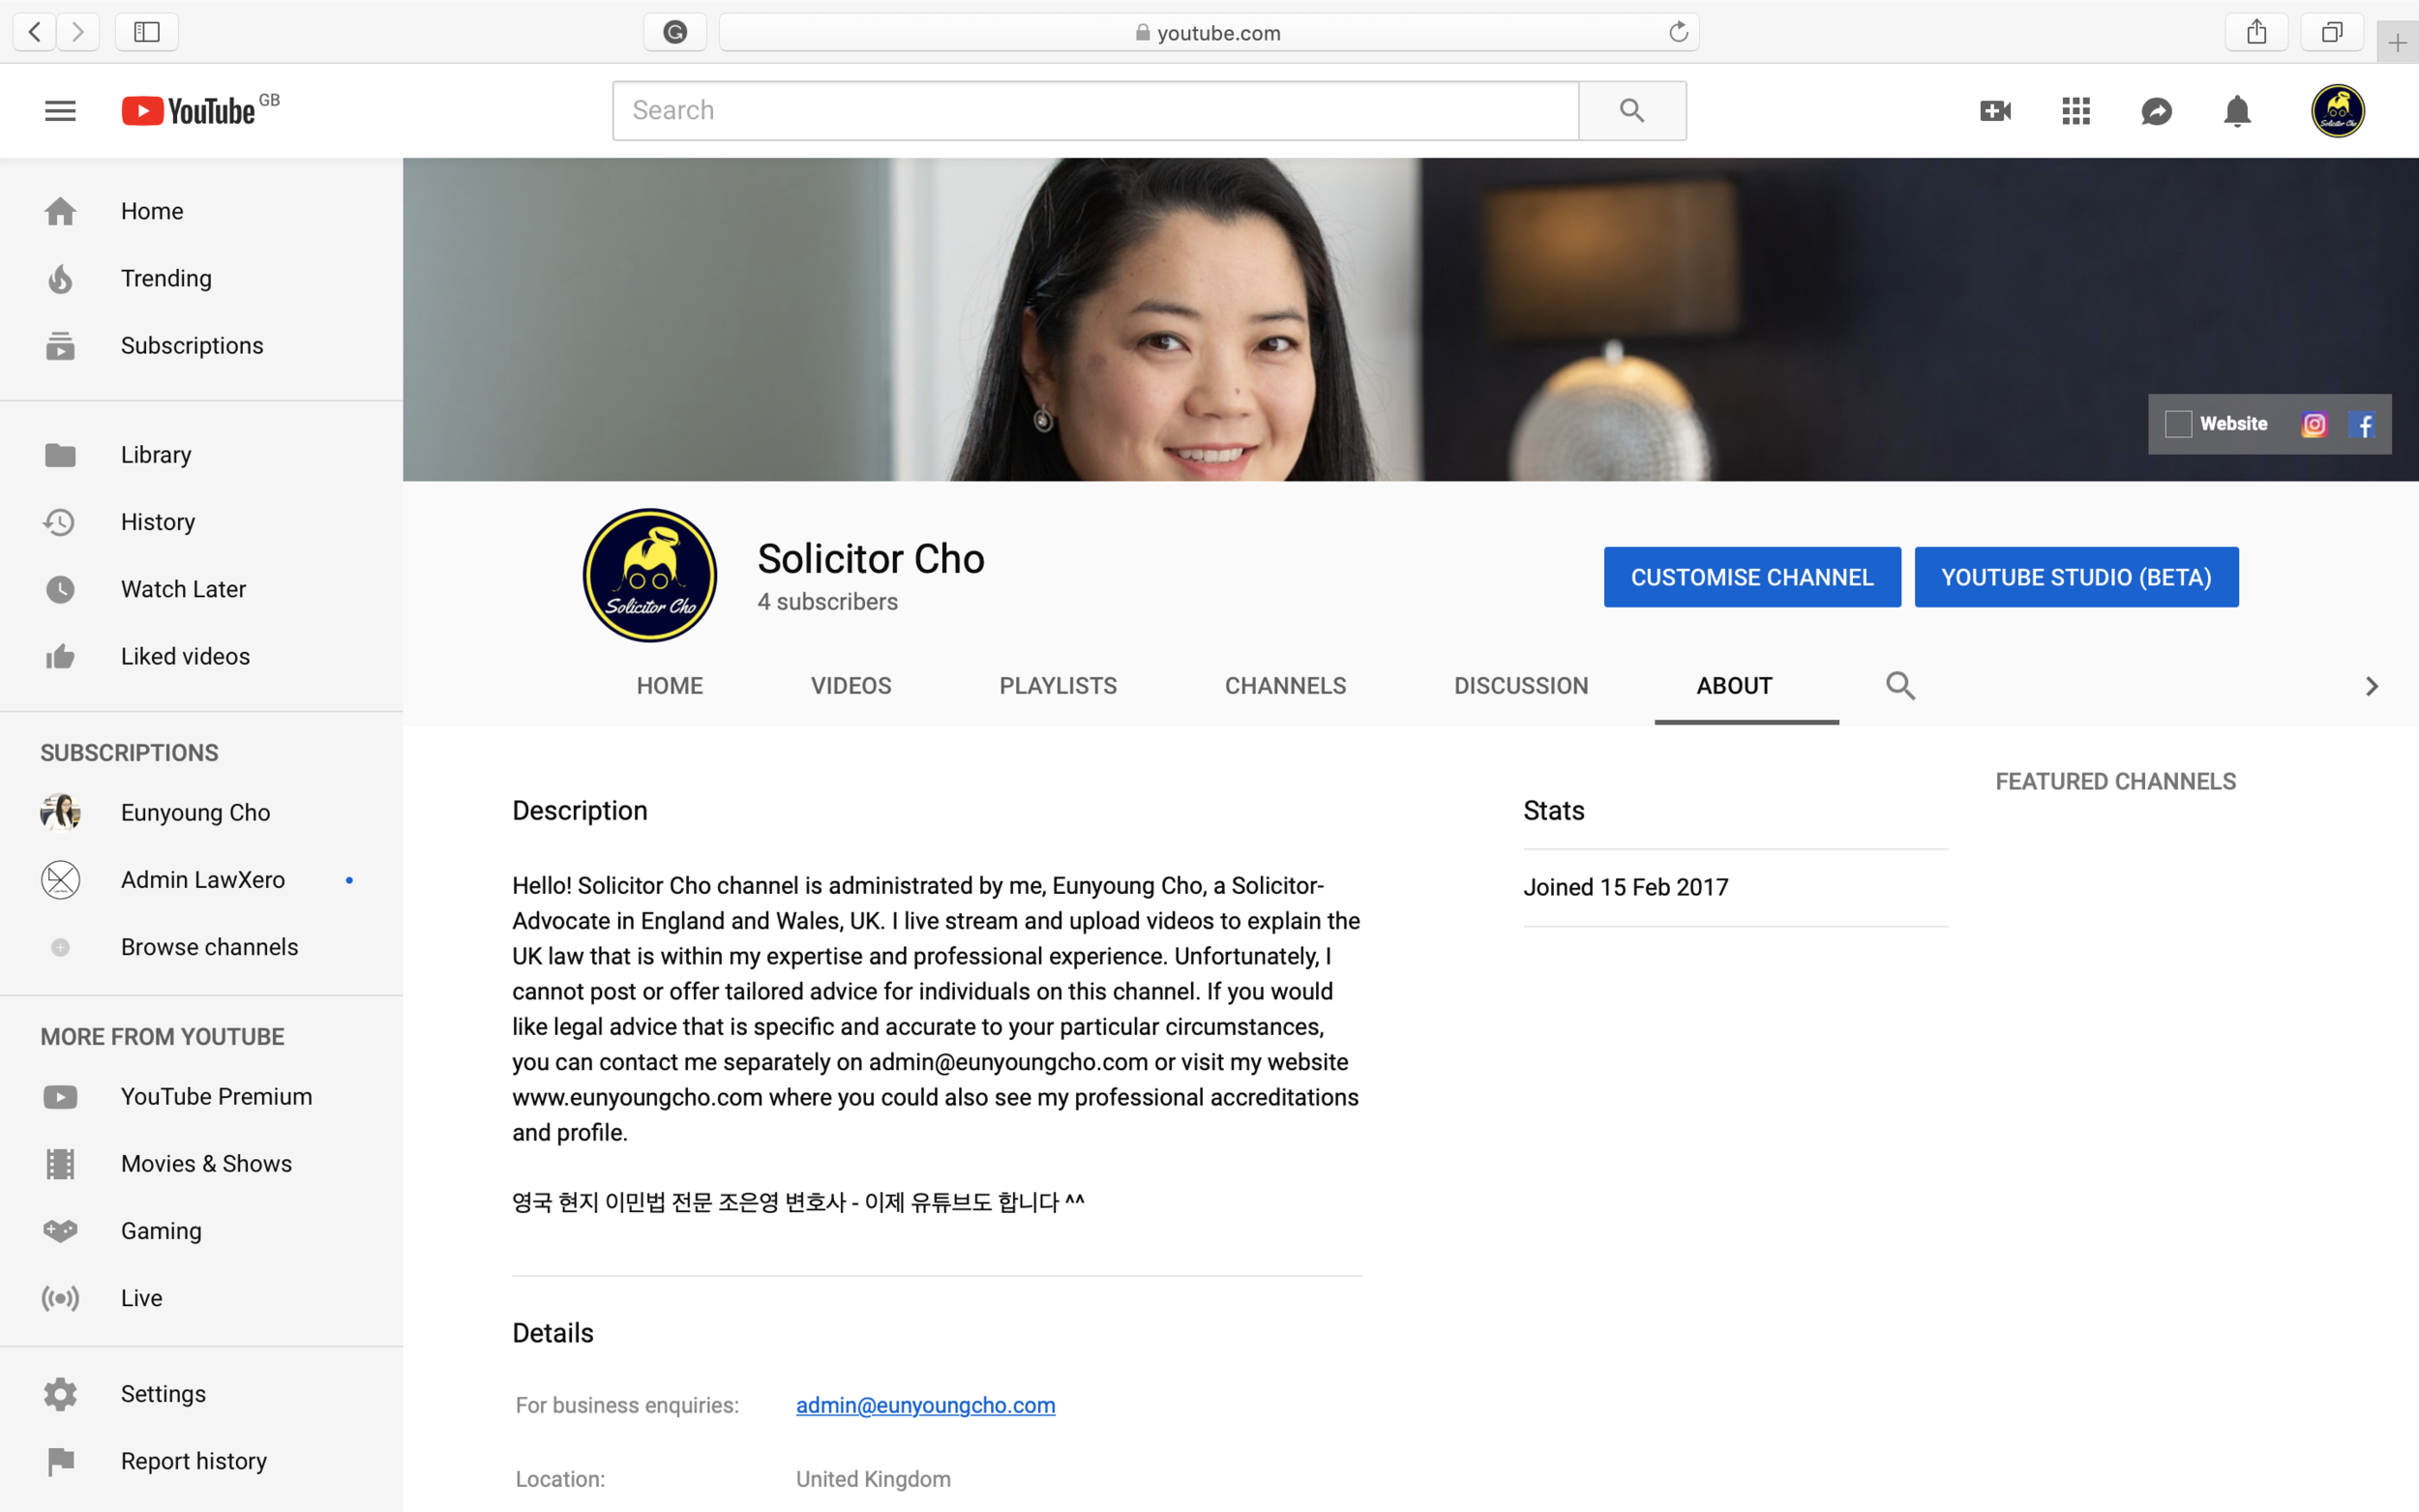 Go to Solicitor Cho on YouTube -